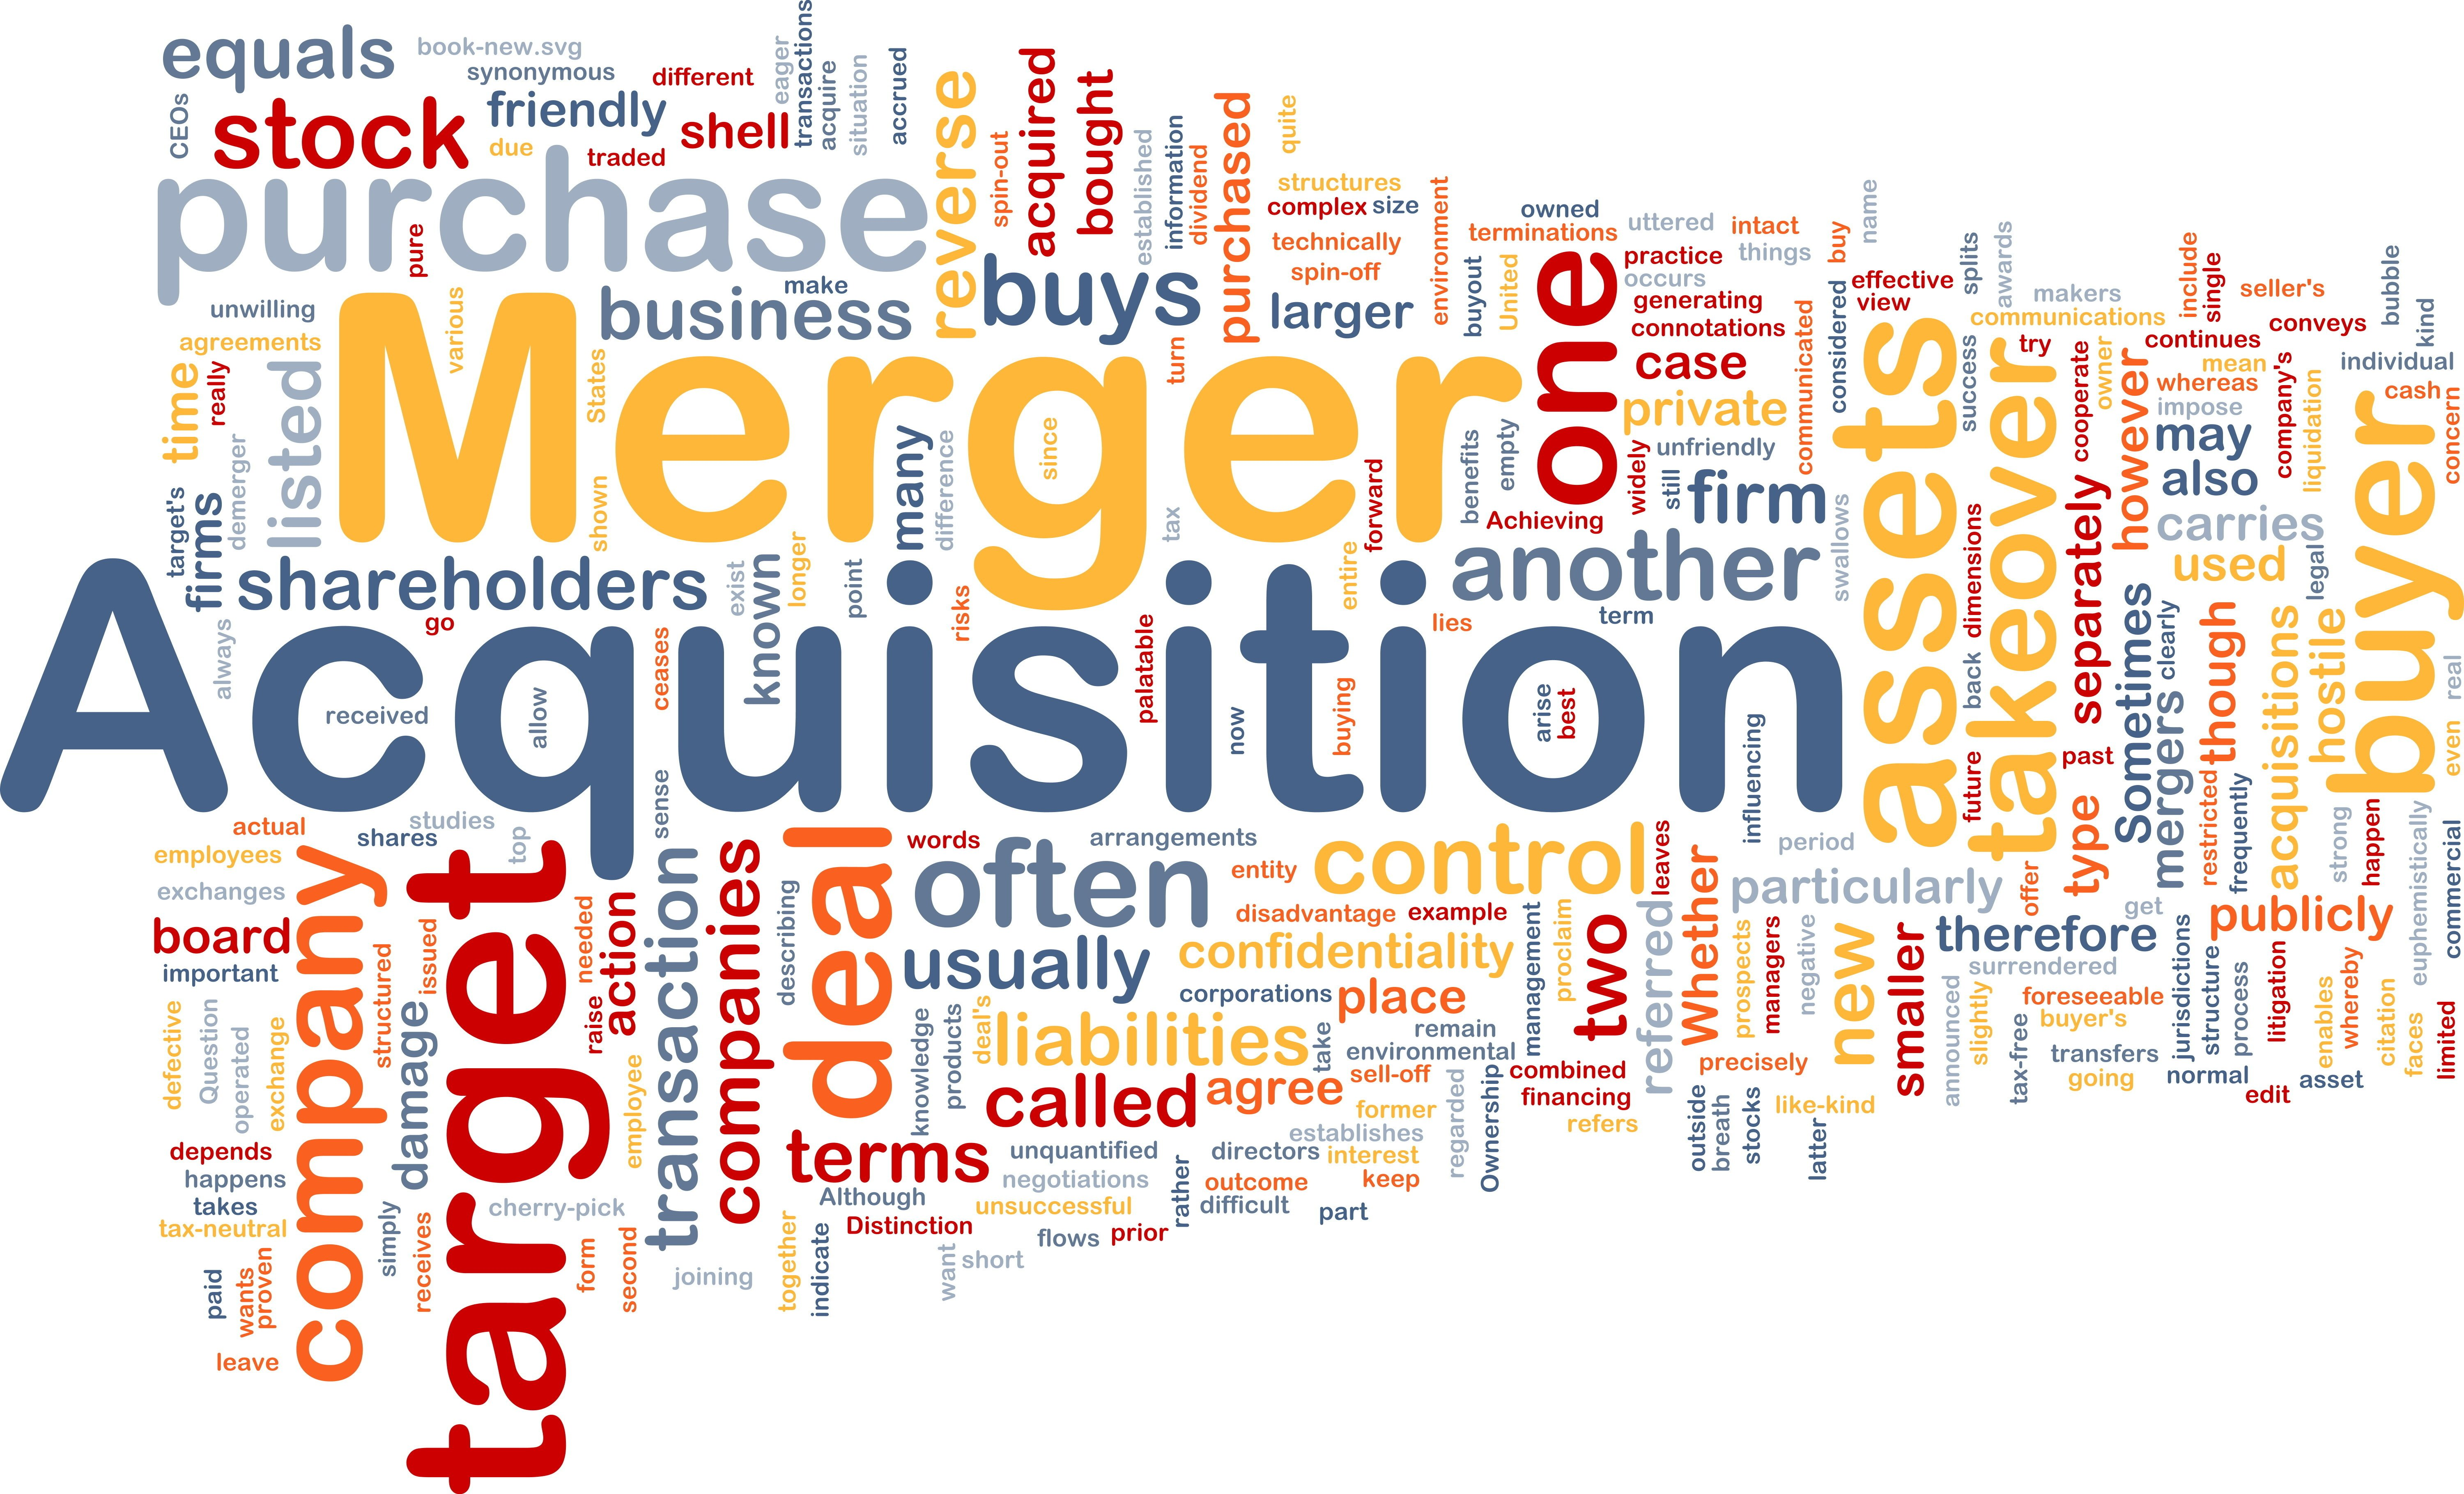 merger and acqisition